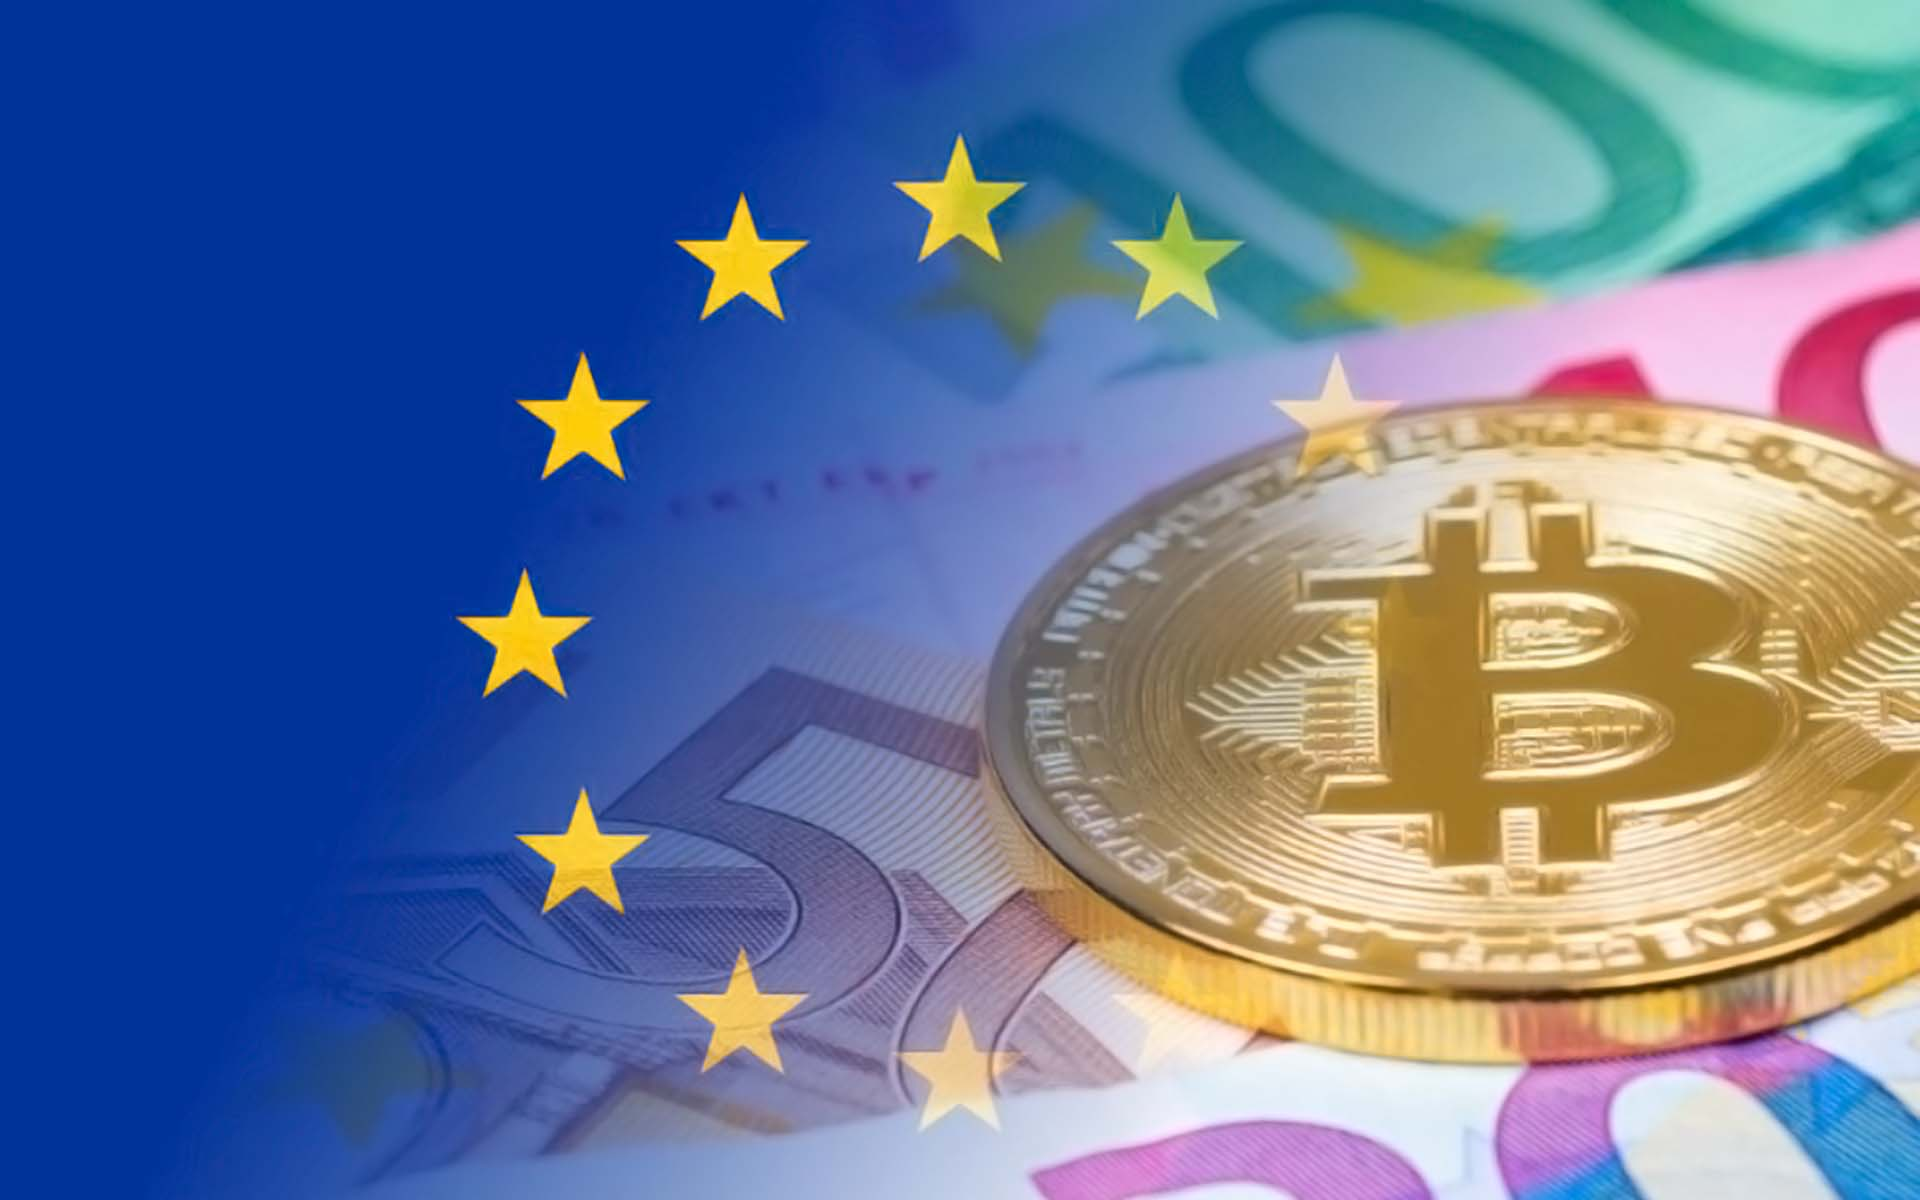 EU still not regulating cryptocurrency